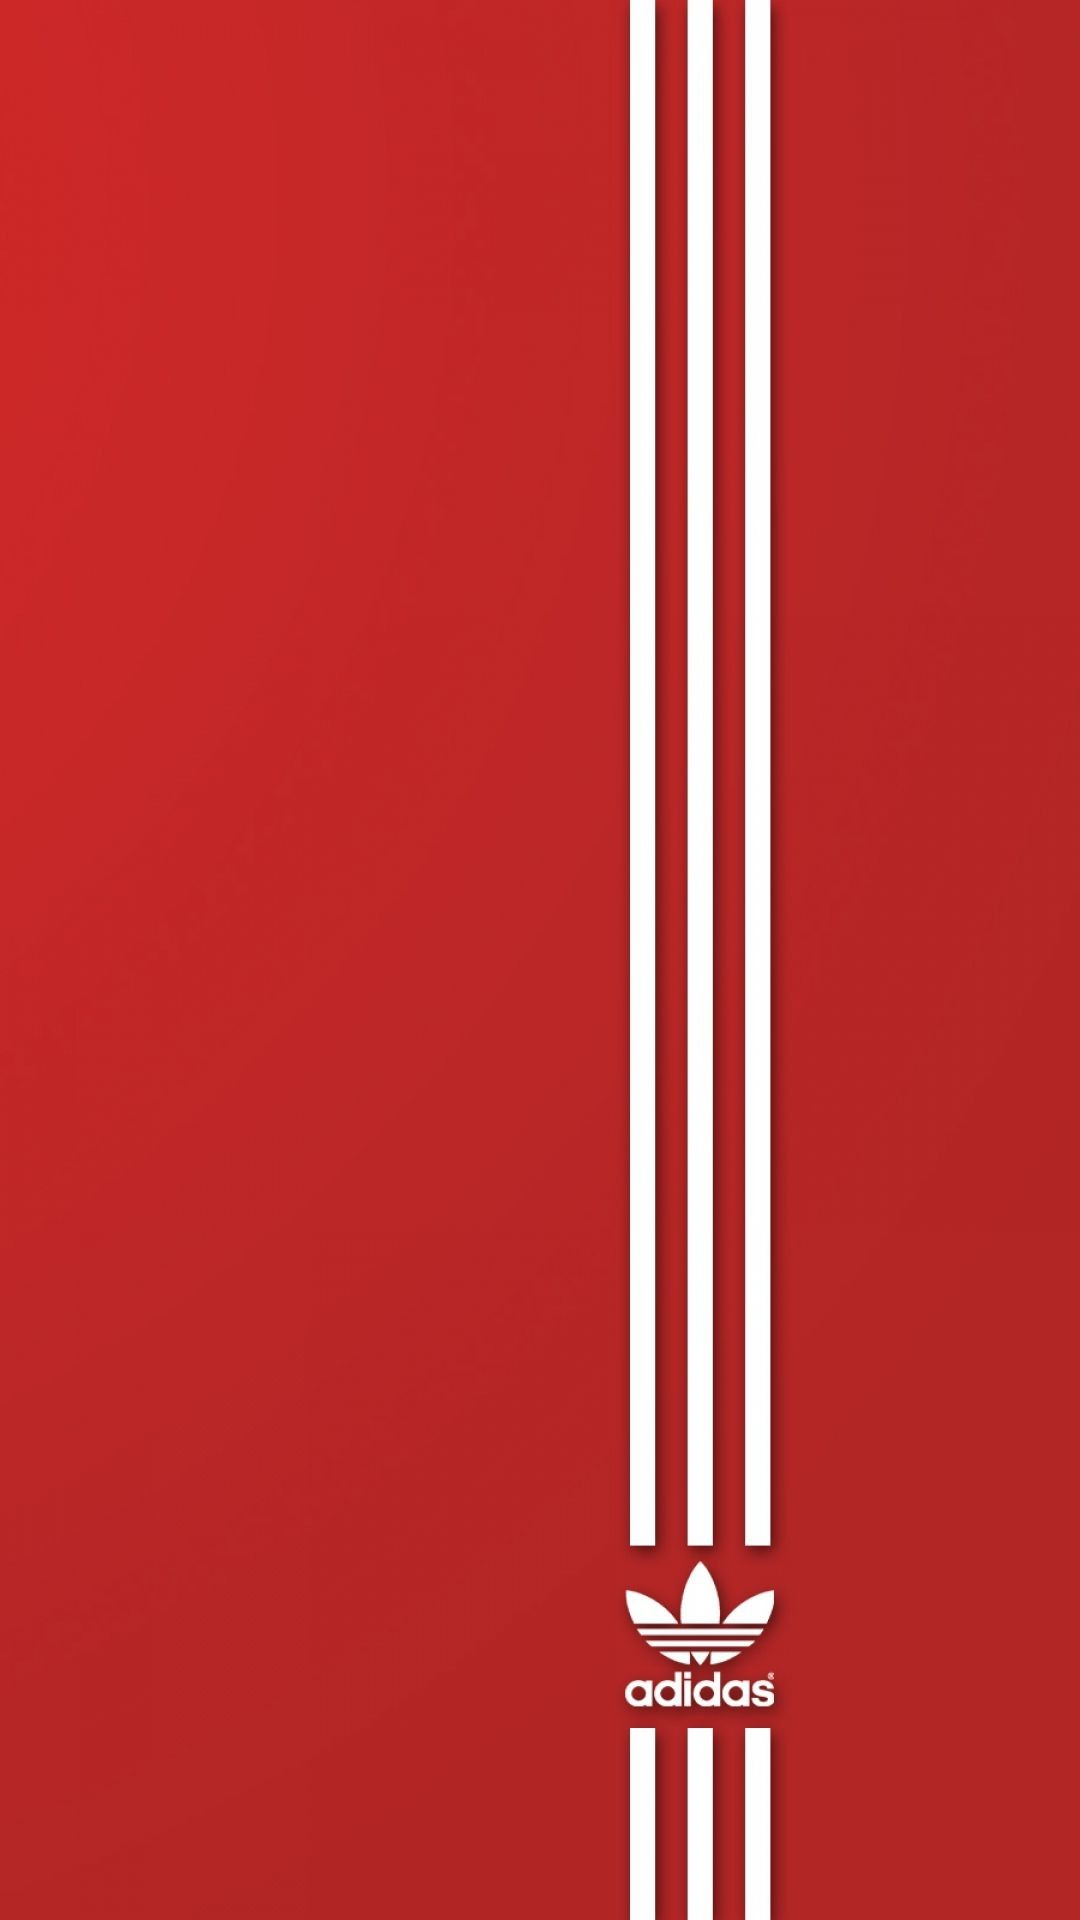 Supreme Girl Wallpaper Adidas Originals Logo Wallpaper 57 Images